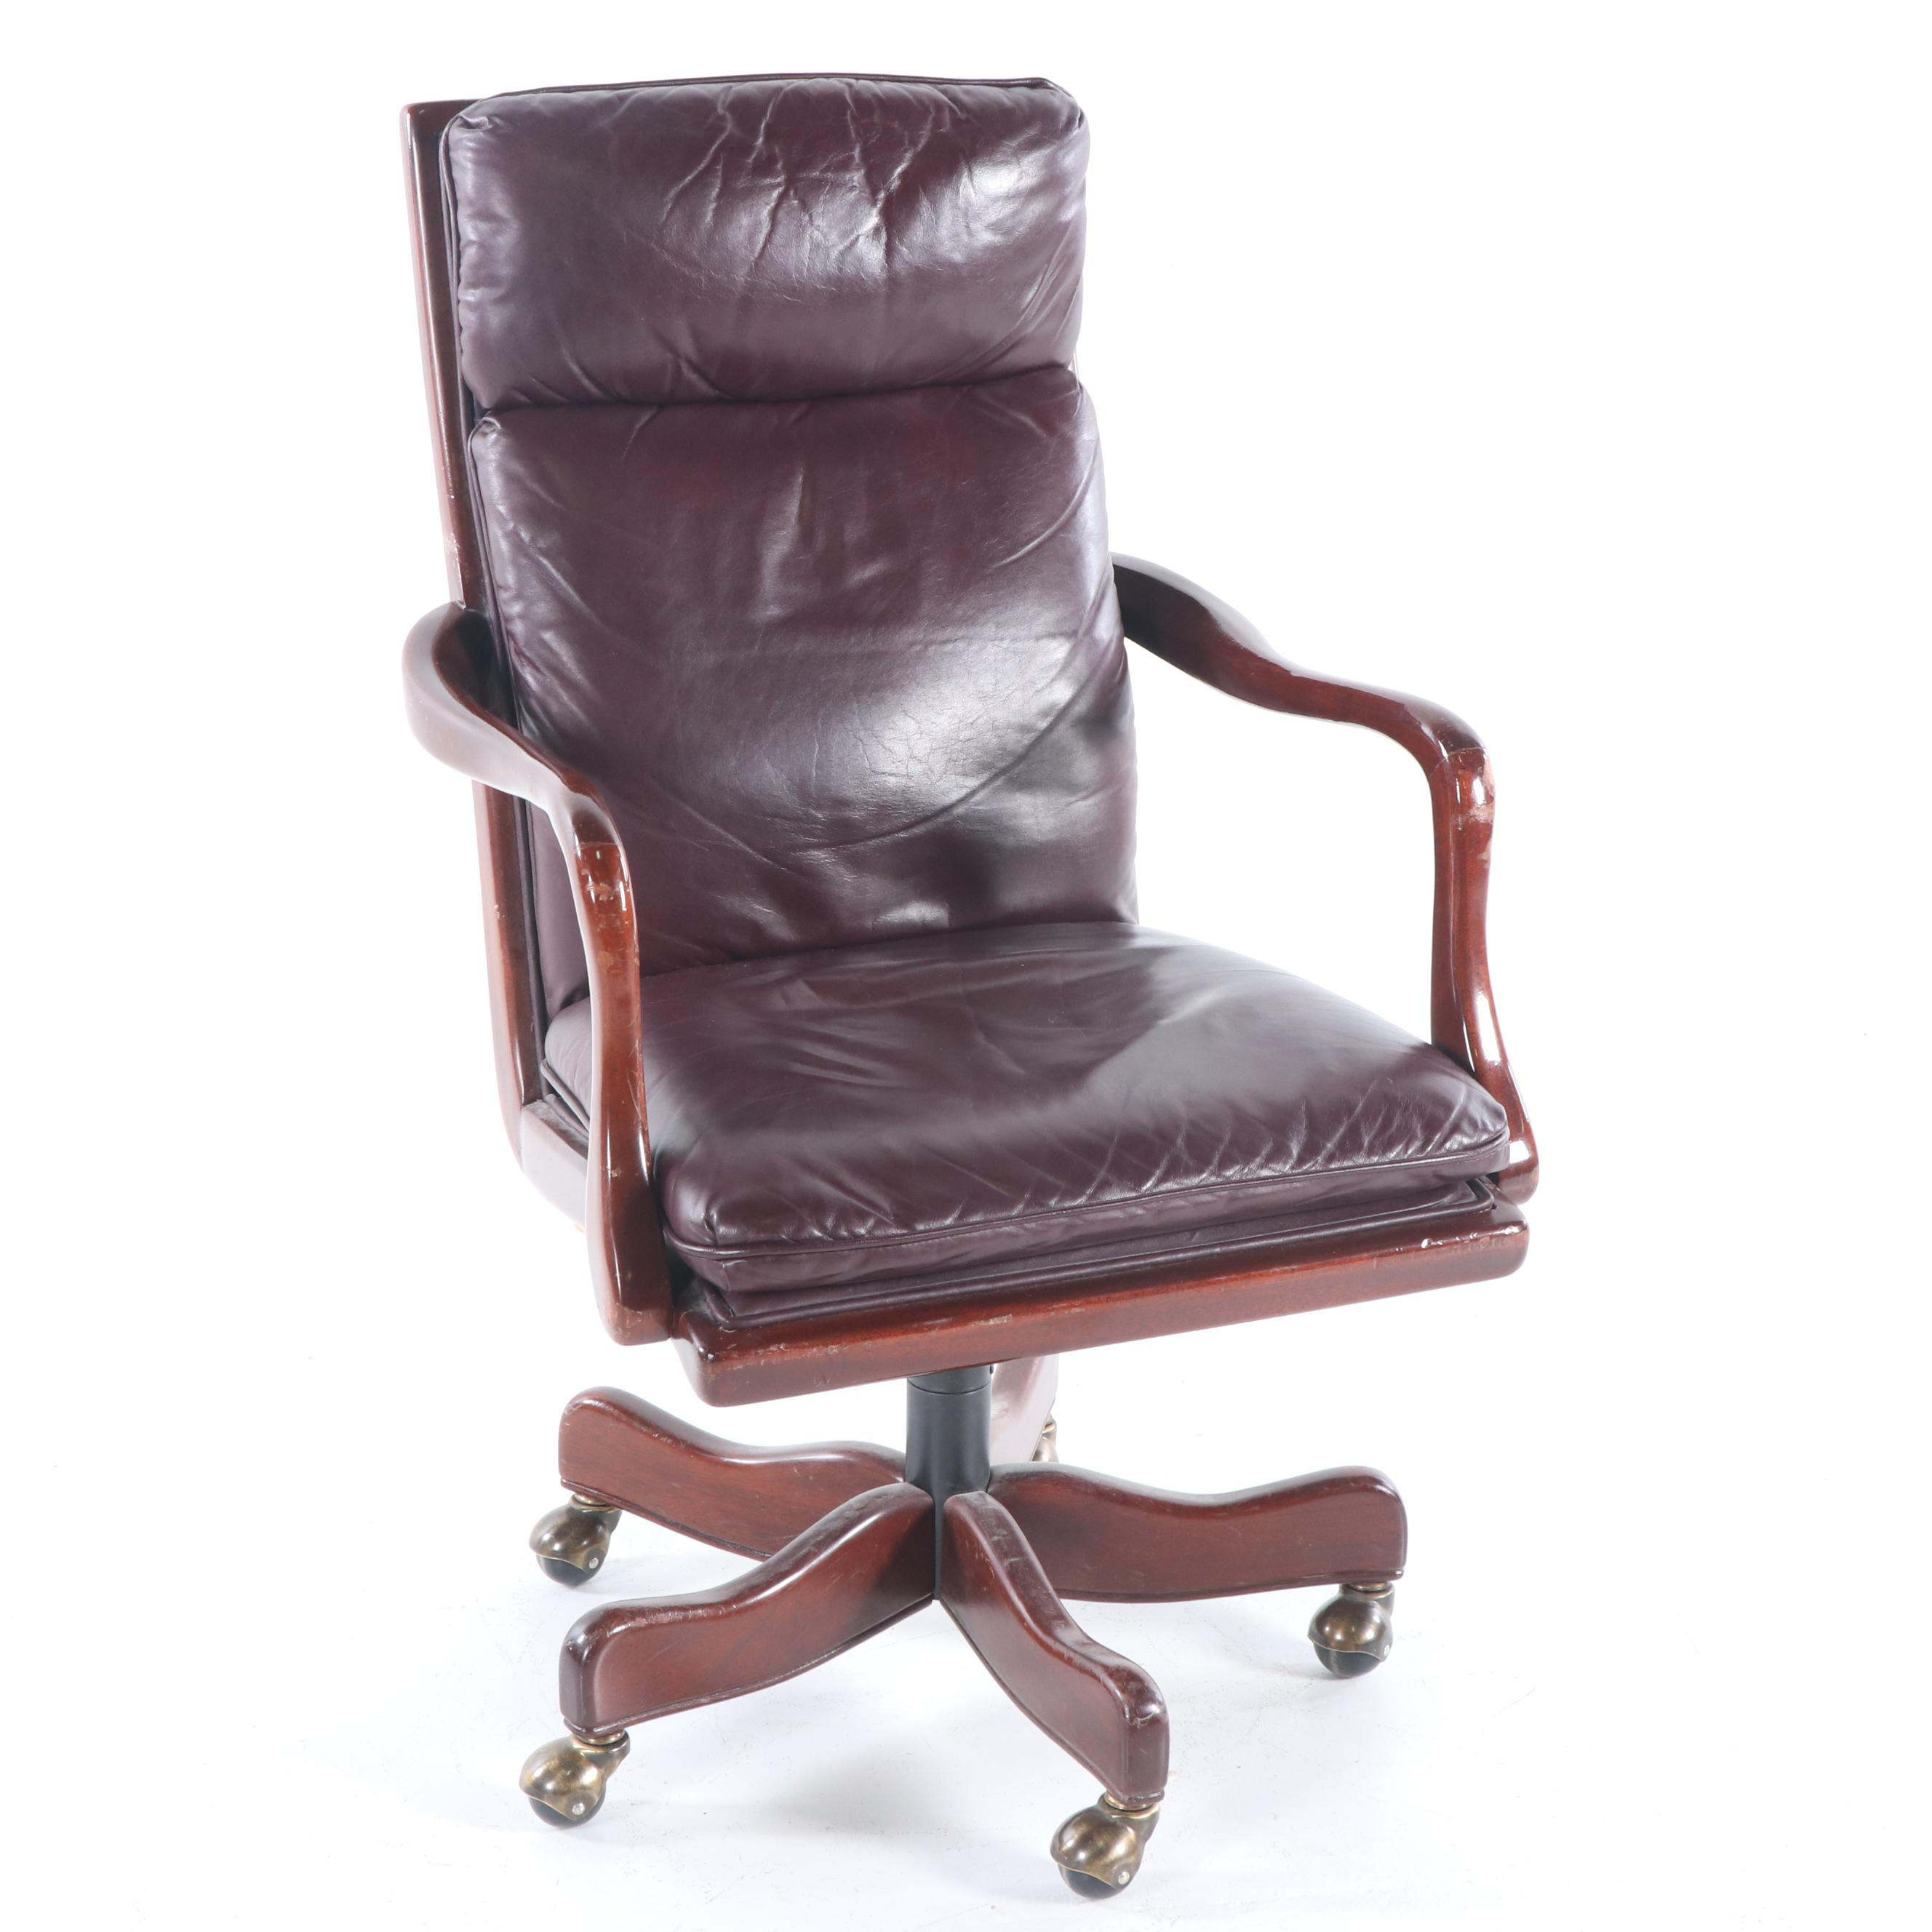 wood and leather office chair increase dining height on casters late 20th century ebth